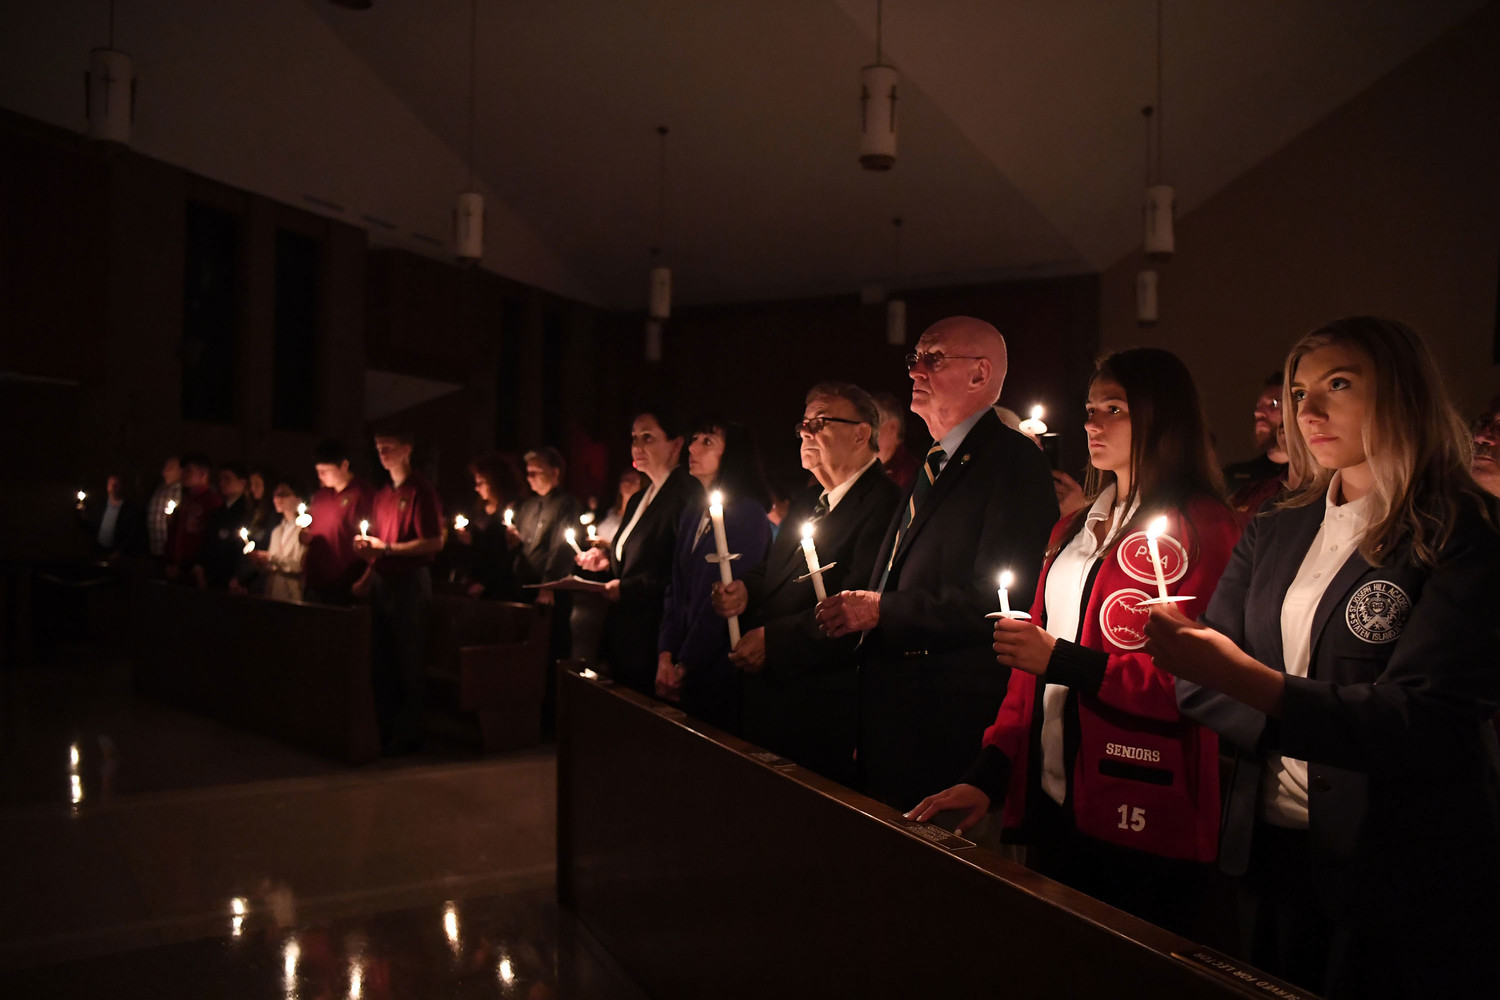 Participants hold lighted candles at the annual Eve of Remembrance in Our Lady of Pity Church on Staten Island last September. This year's vigil marking the 17th anniversary of 9/11 will be held at Our Lady of Pity on Monday, Sept. 10, at 7 p.m.